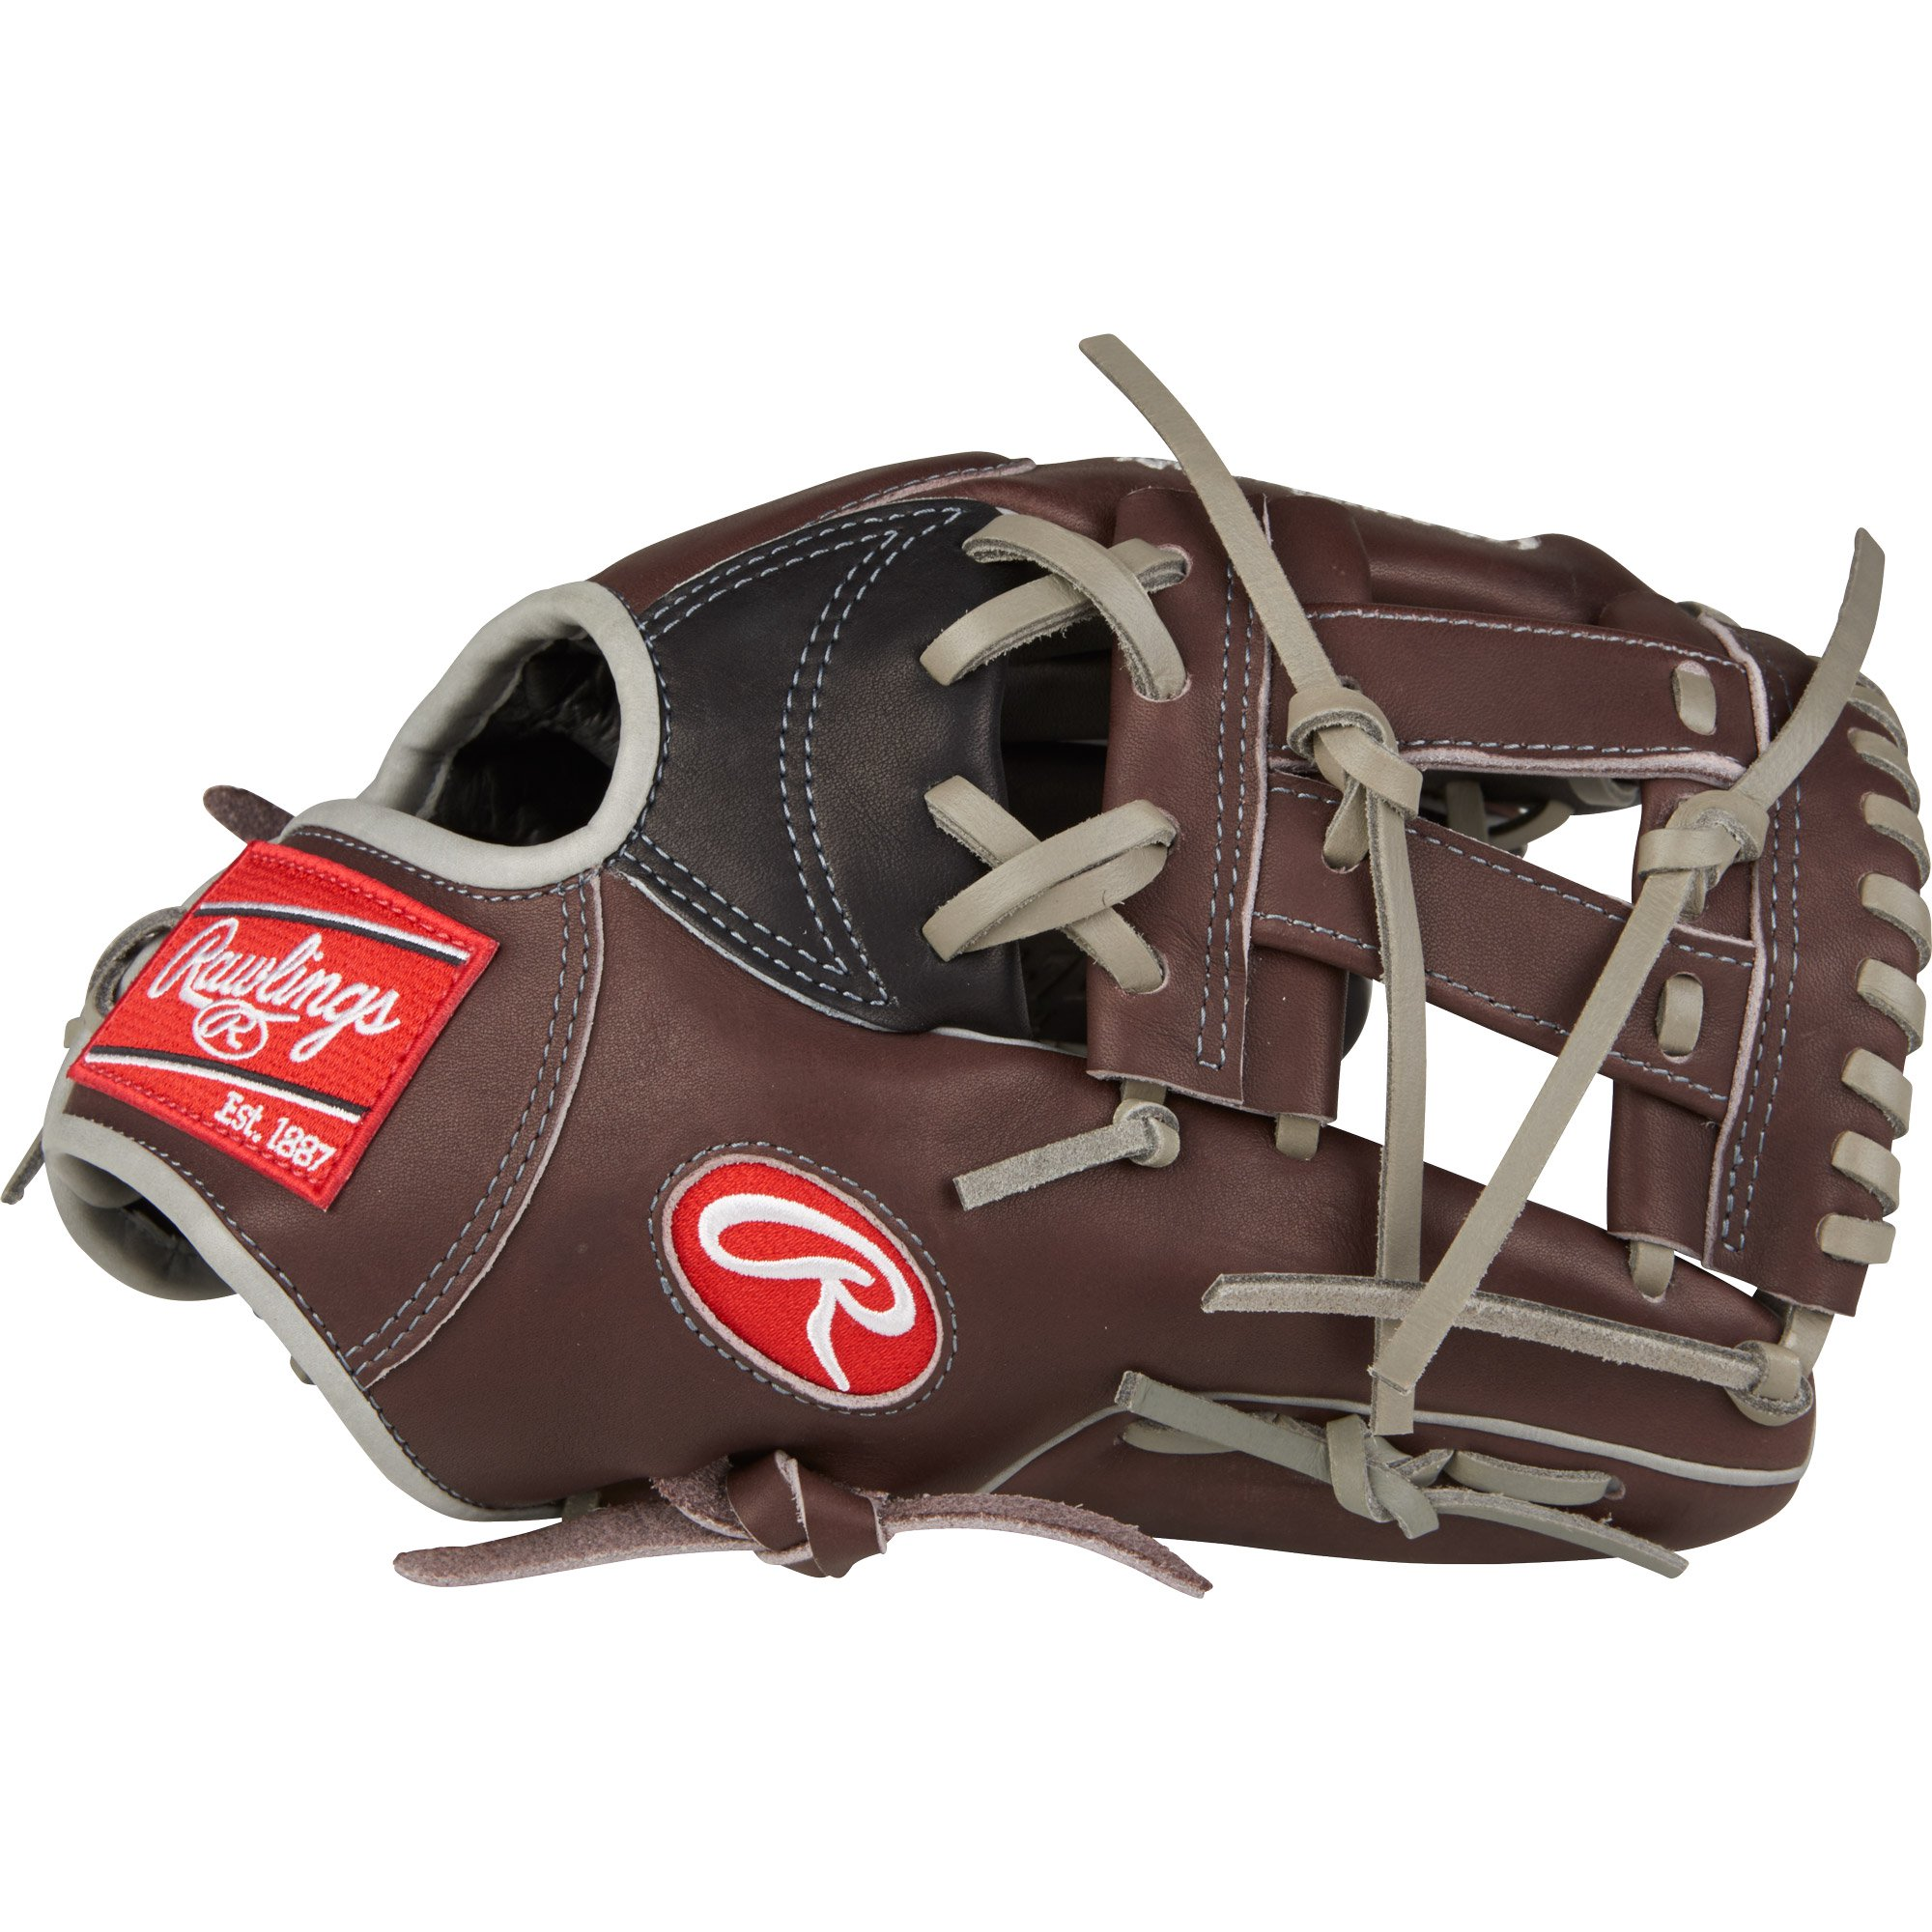 """Rawlings Heart of the Hide 11.75"""" Infield Pitcher Adult Baseball Glove, Brown by Rawlings"""